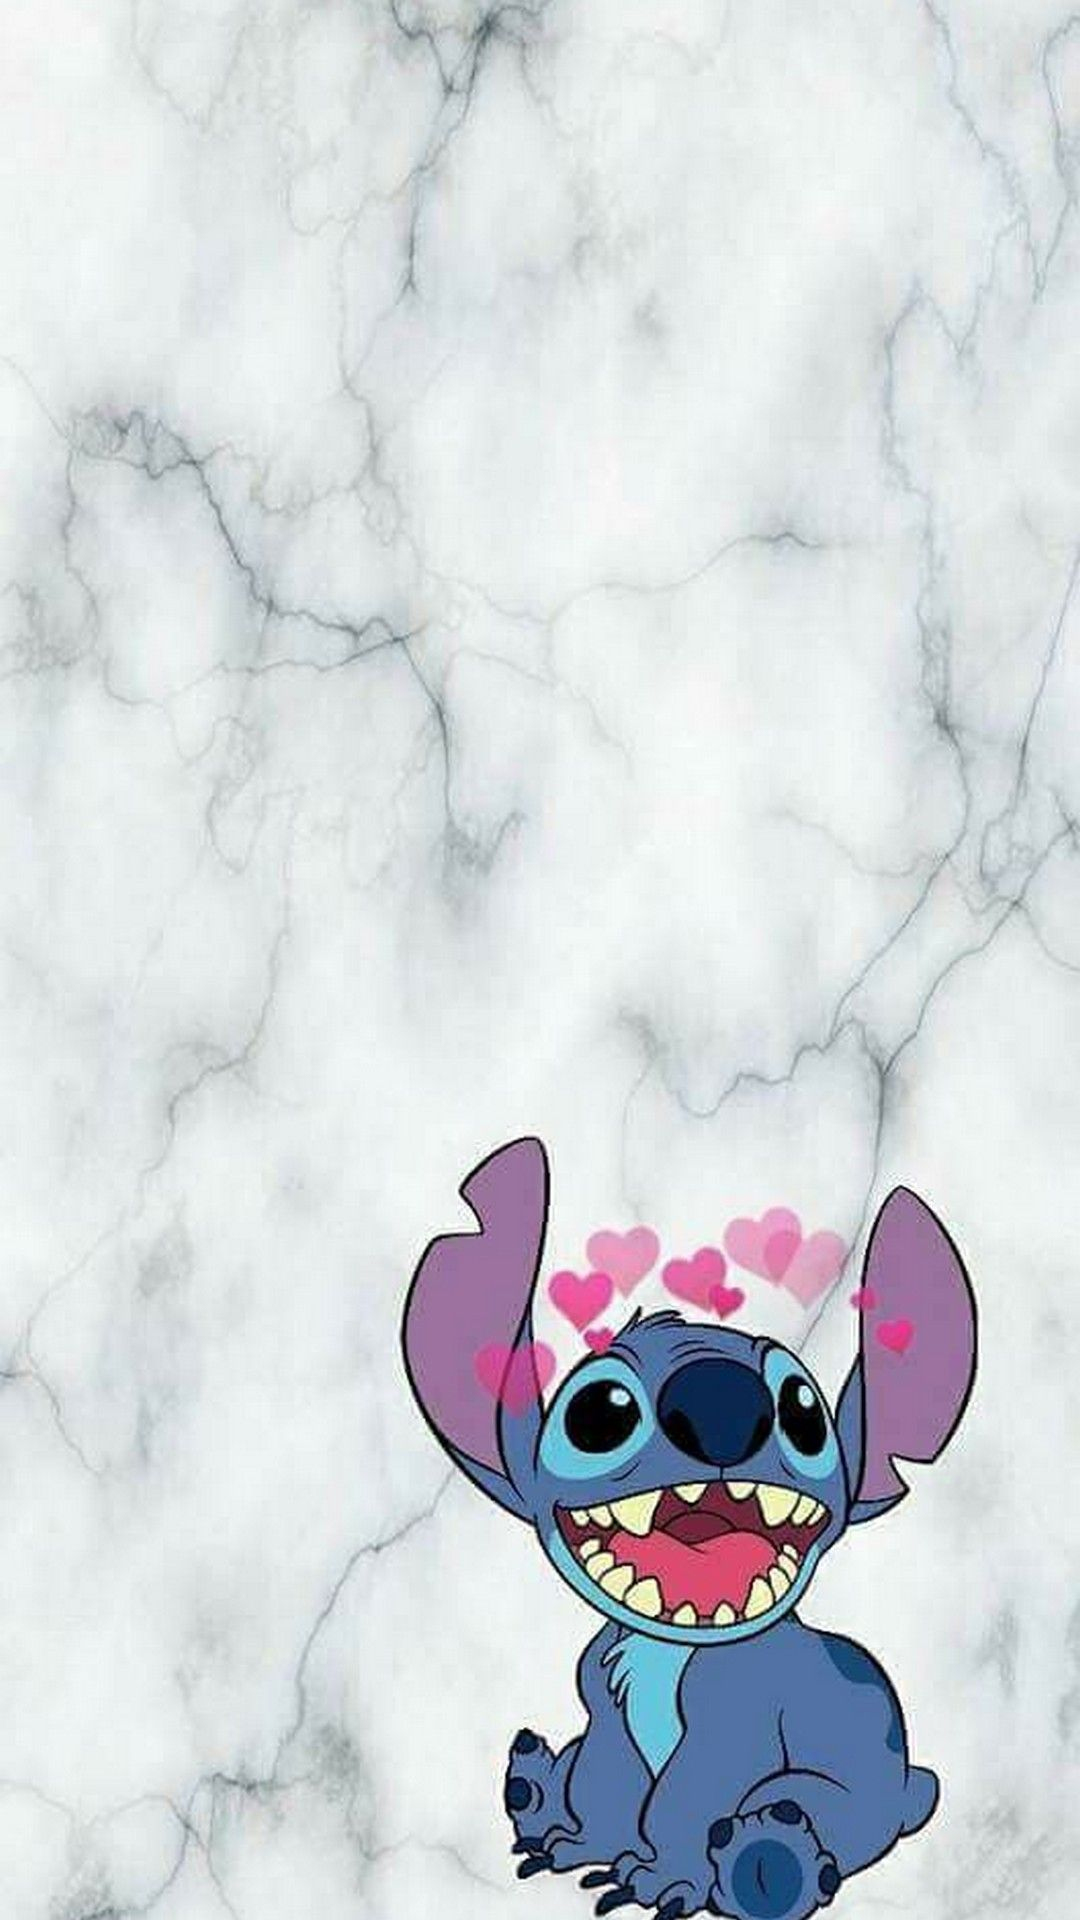 Emoji Stitch Hd Iphone Wallpaper » Hupages » Download Iphone Wallpapers